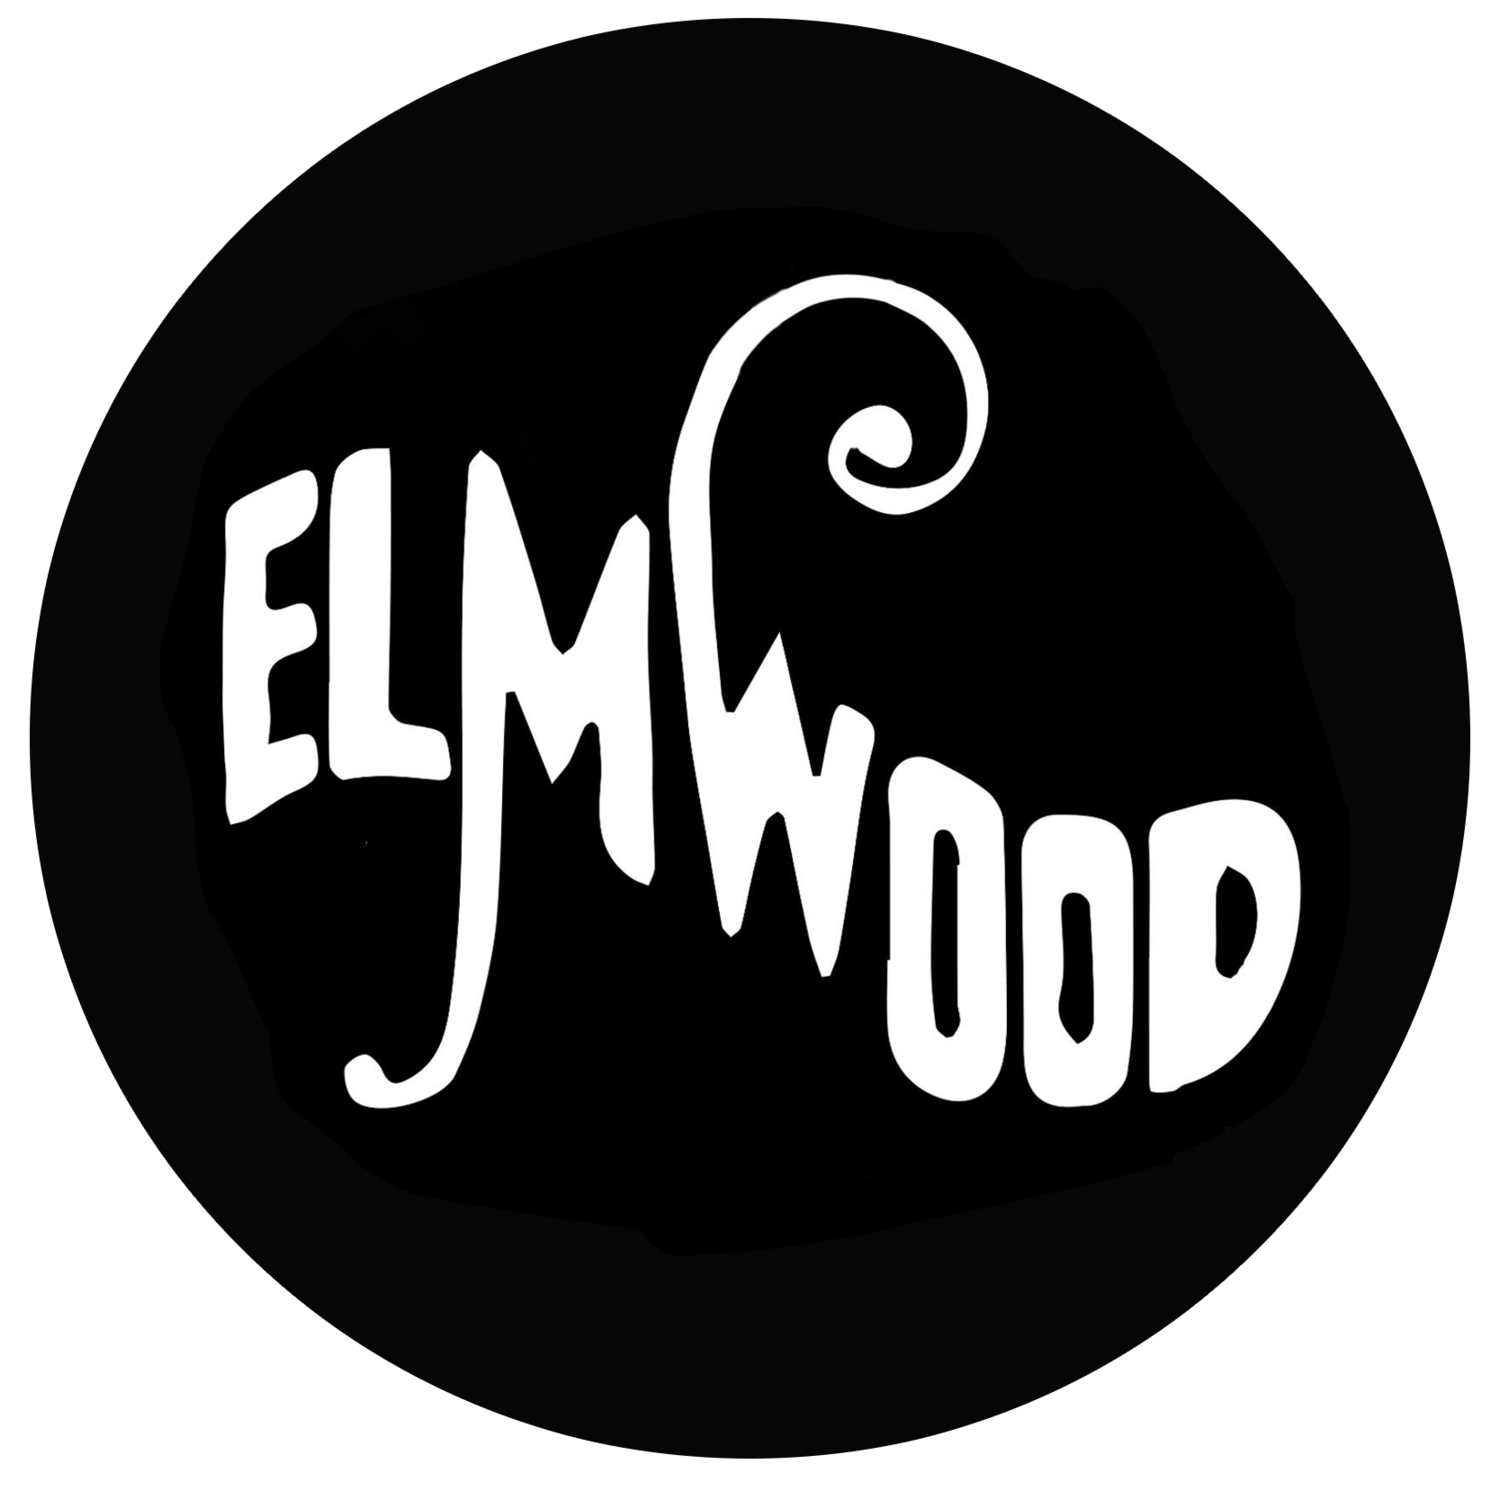 Elmwood Neighborhood Assocation